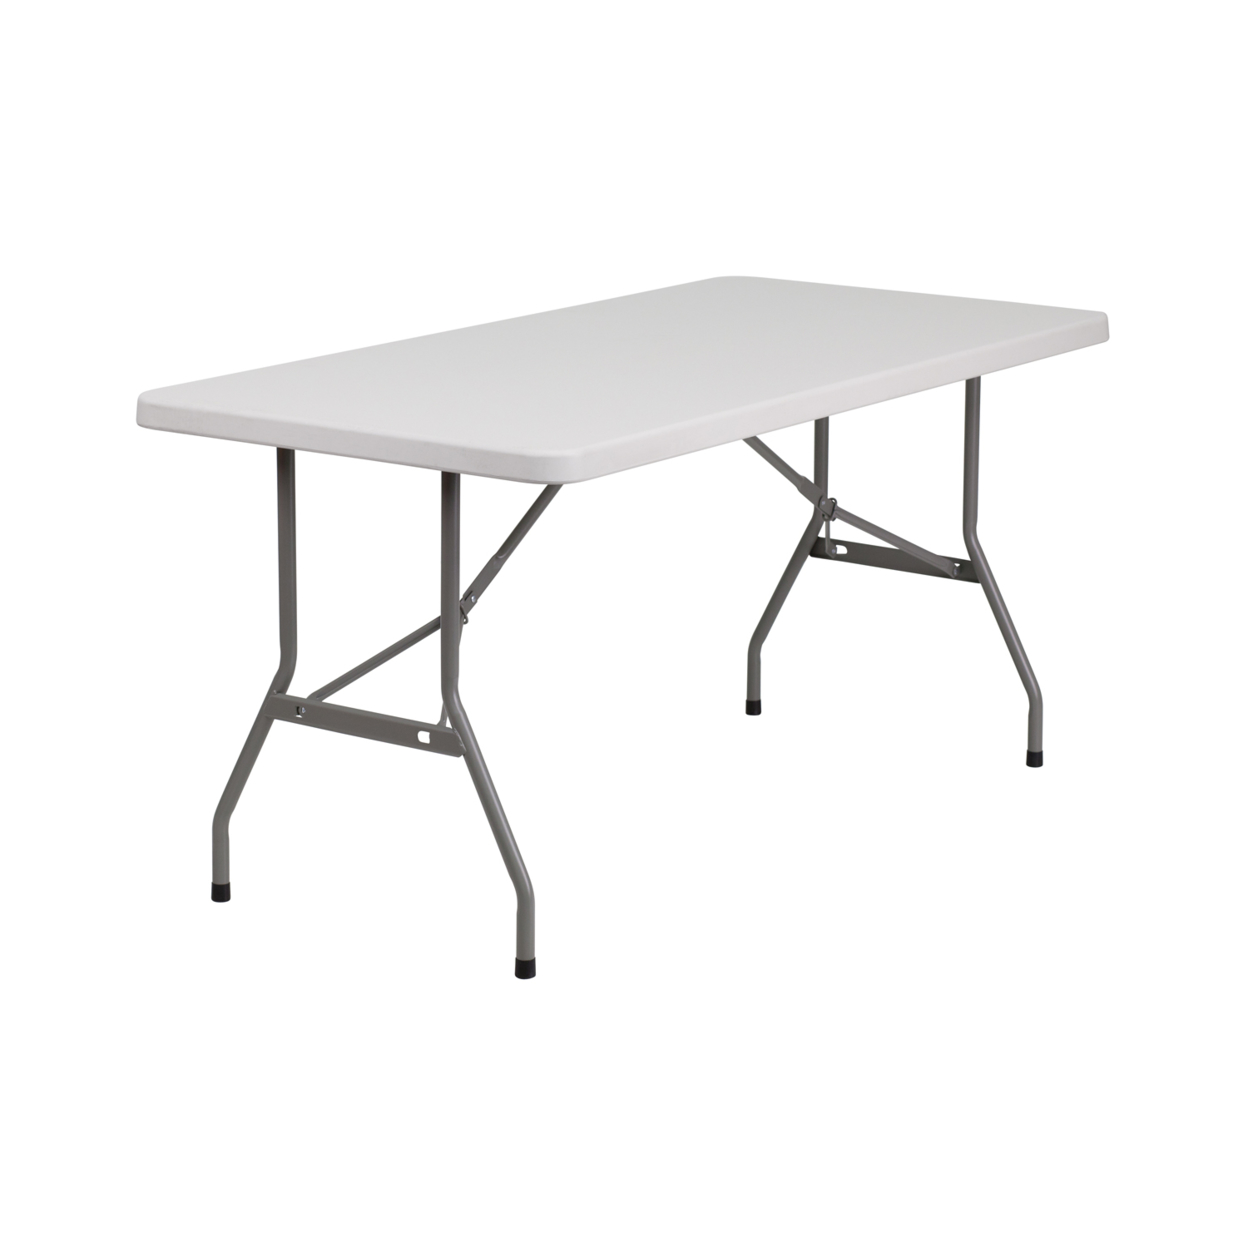 Flash Furniture 30''W x 60''L Granite White Plastic Folding Table [863-RB-3060-GG] гирлянда snowhouse сосульки rb oic100lse w ti4 white